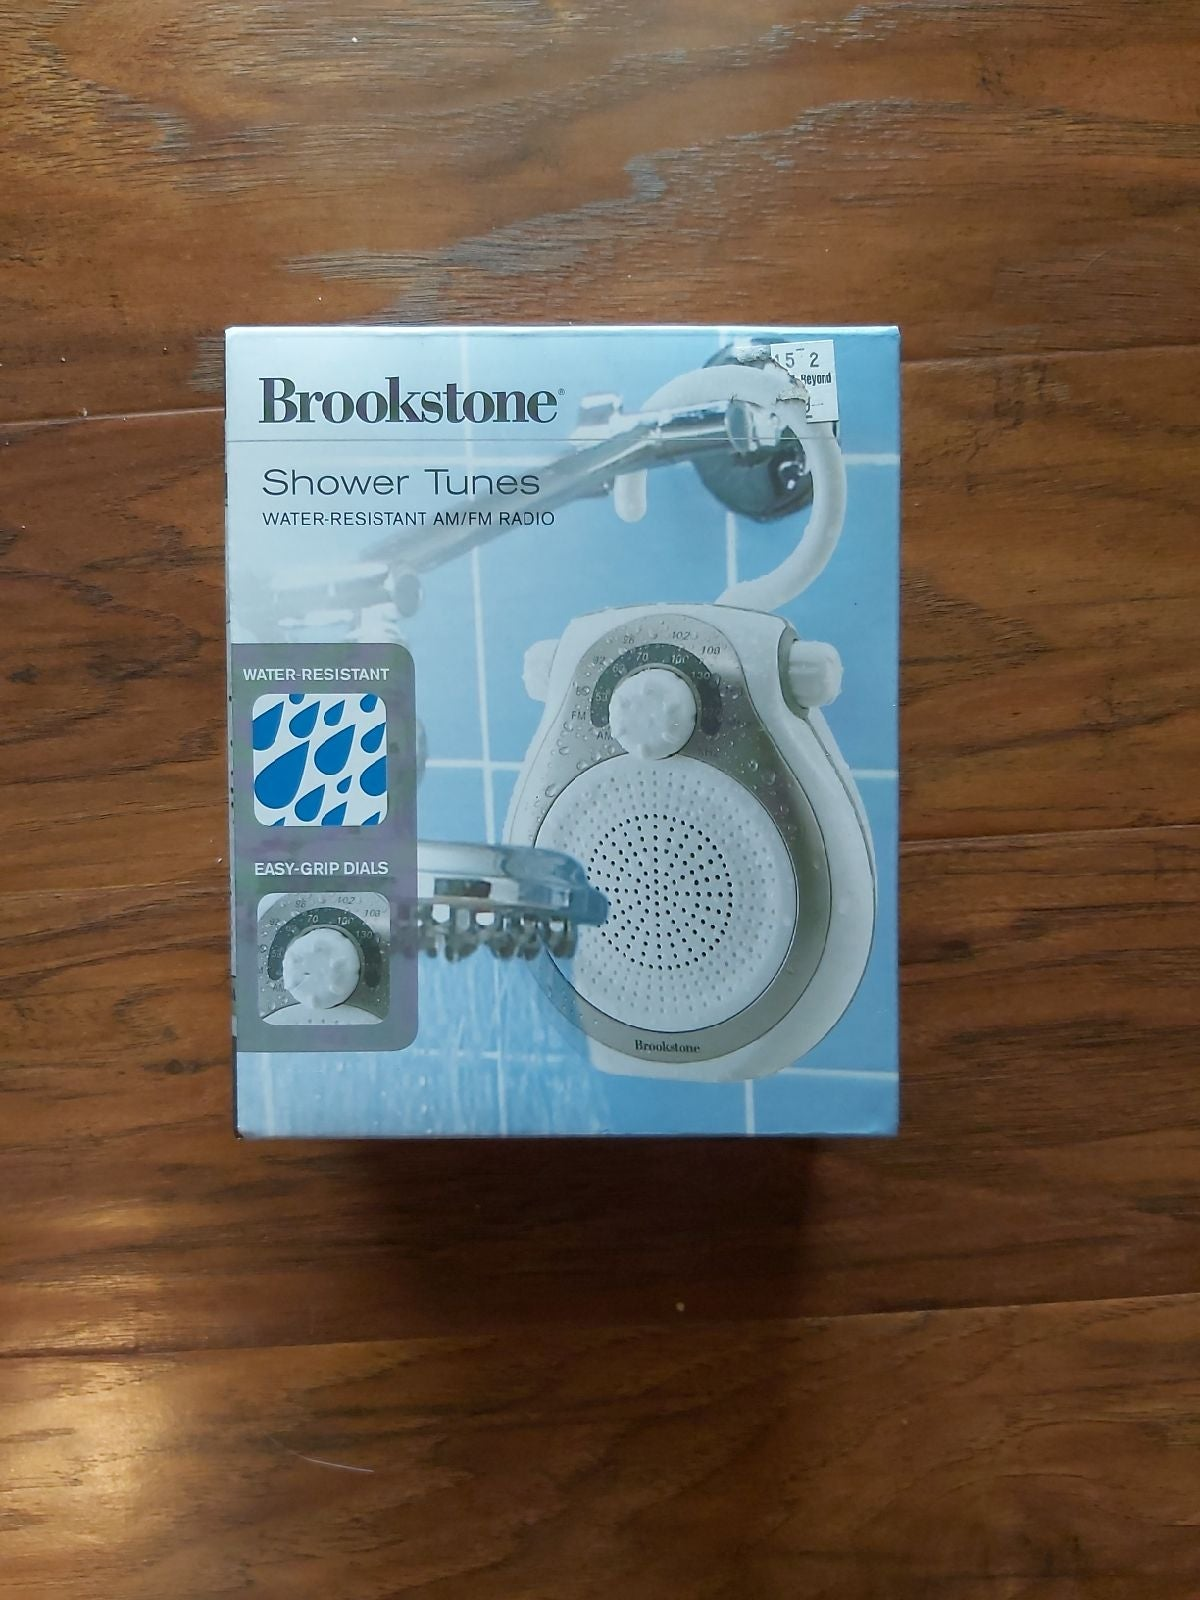 Brookstone Shower Tunes water resistant